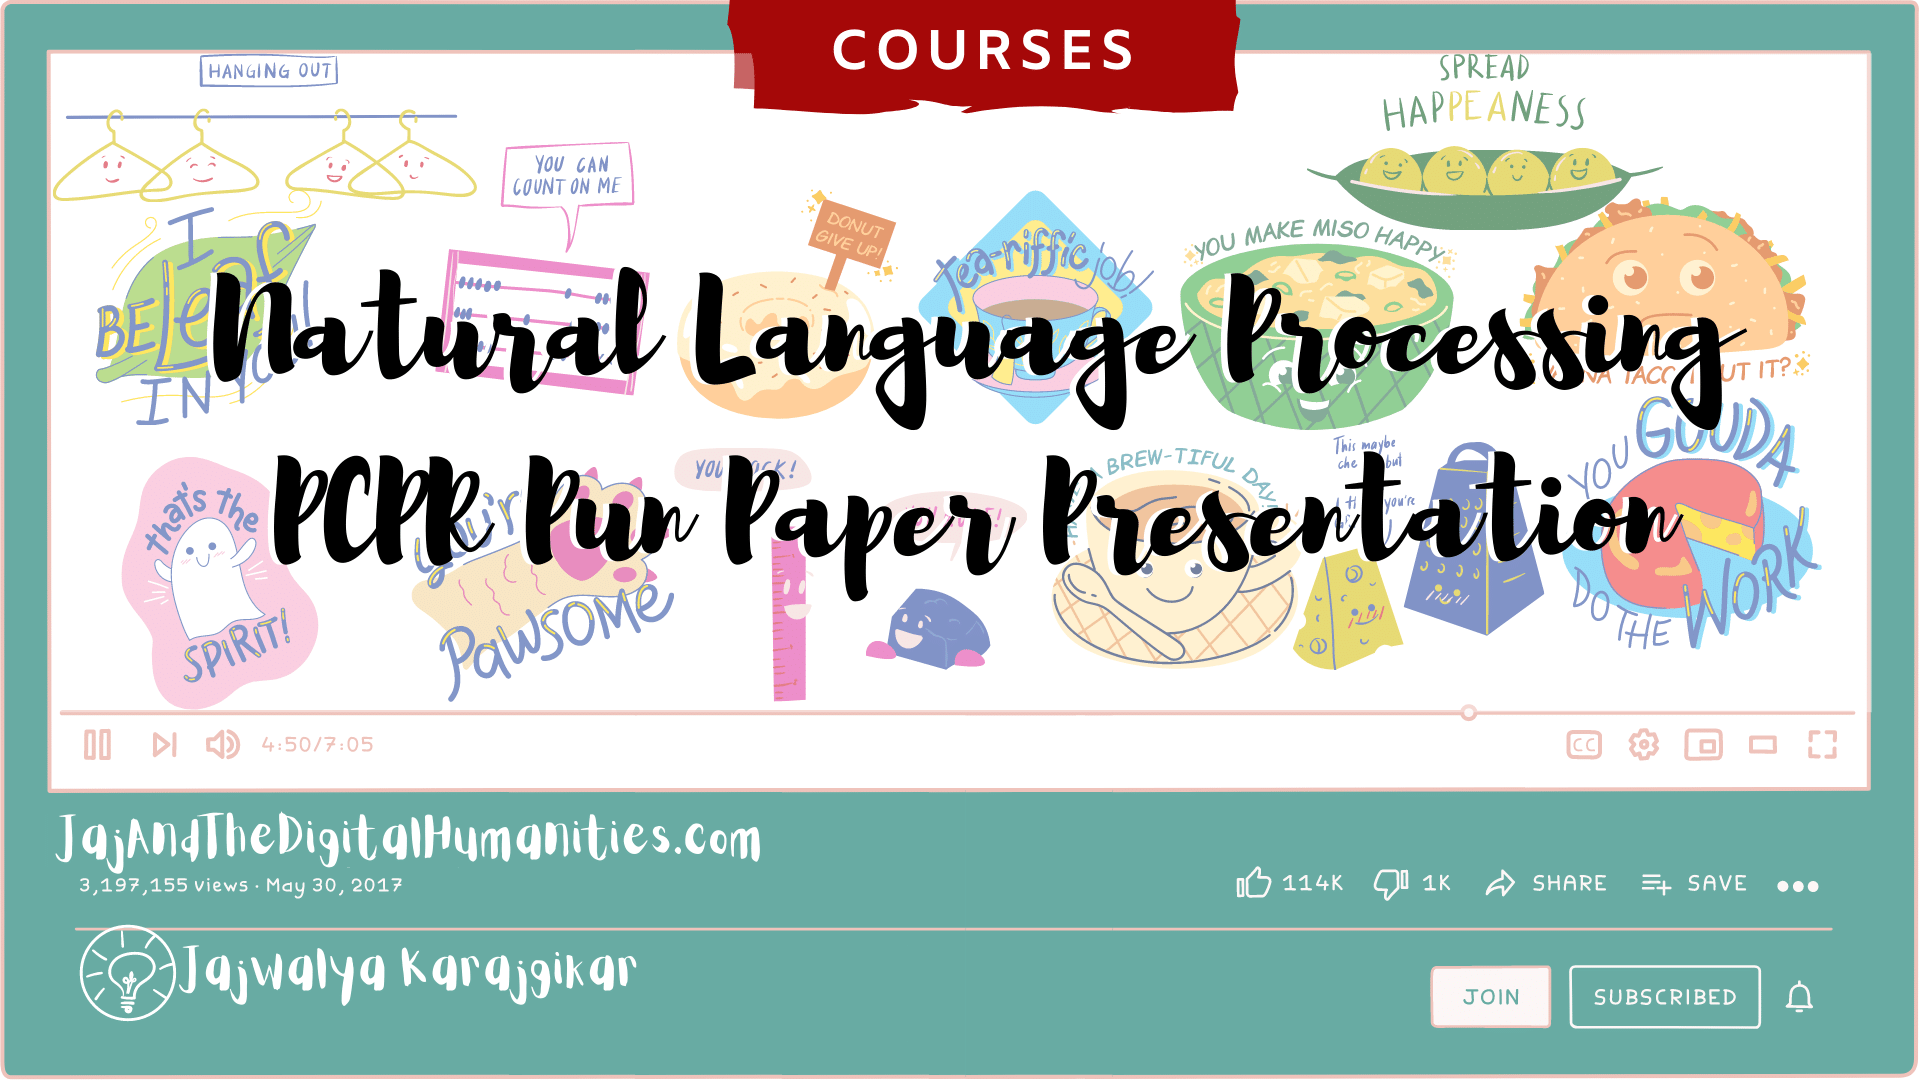 Natural Language Processing Pun Presentation Banner with food pun images set in a cartoon YouTube video format, Tagged Courses